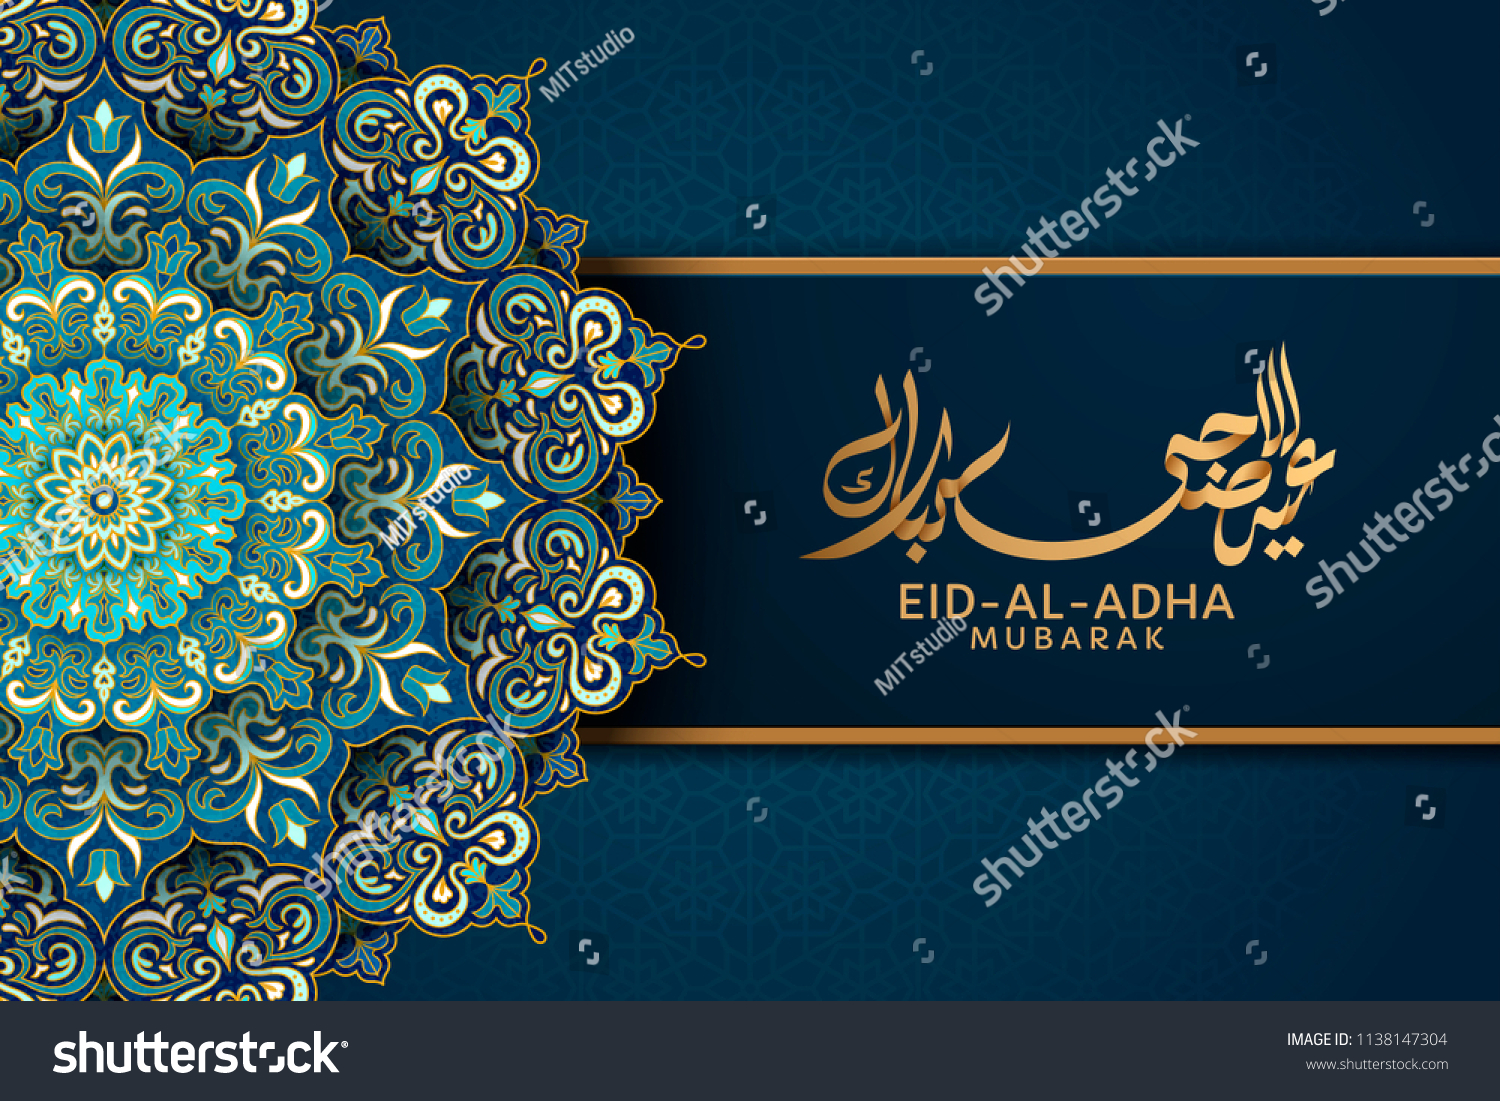 Eid Al Adha calligraphy design with blue arabesque decorations #1138147304